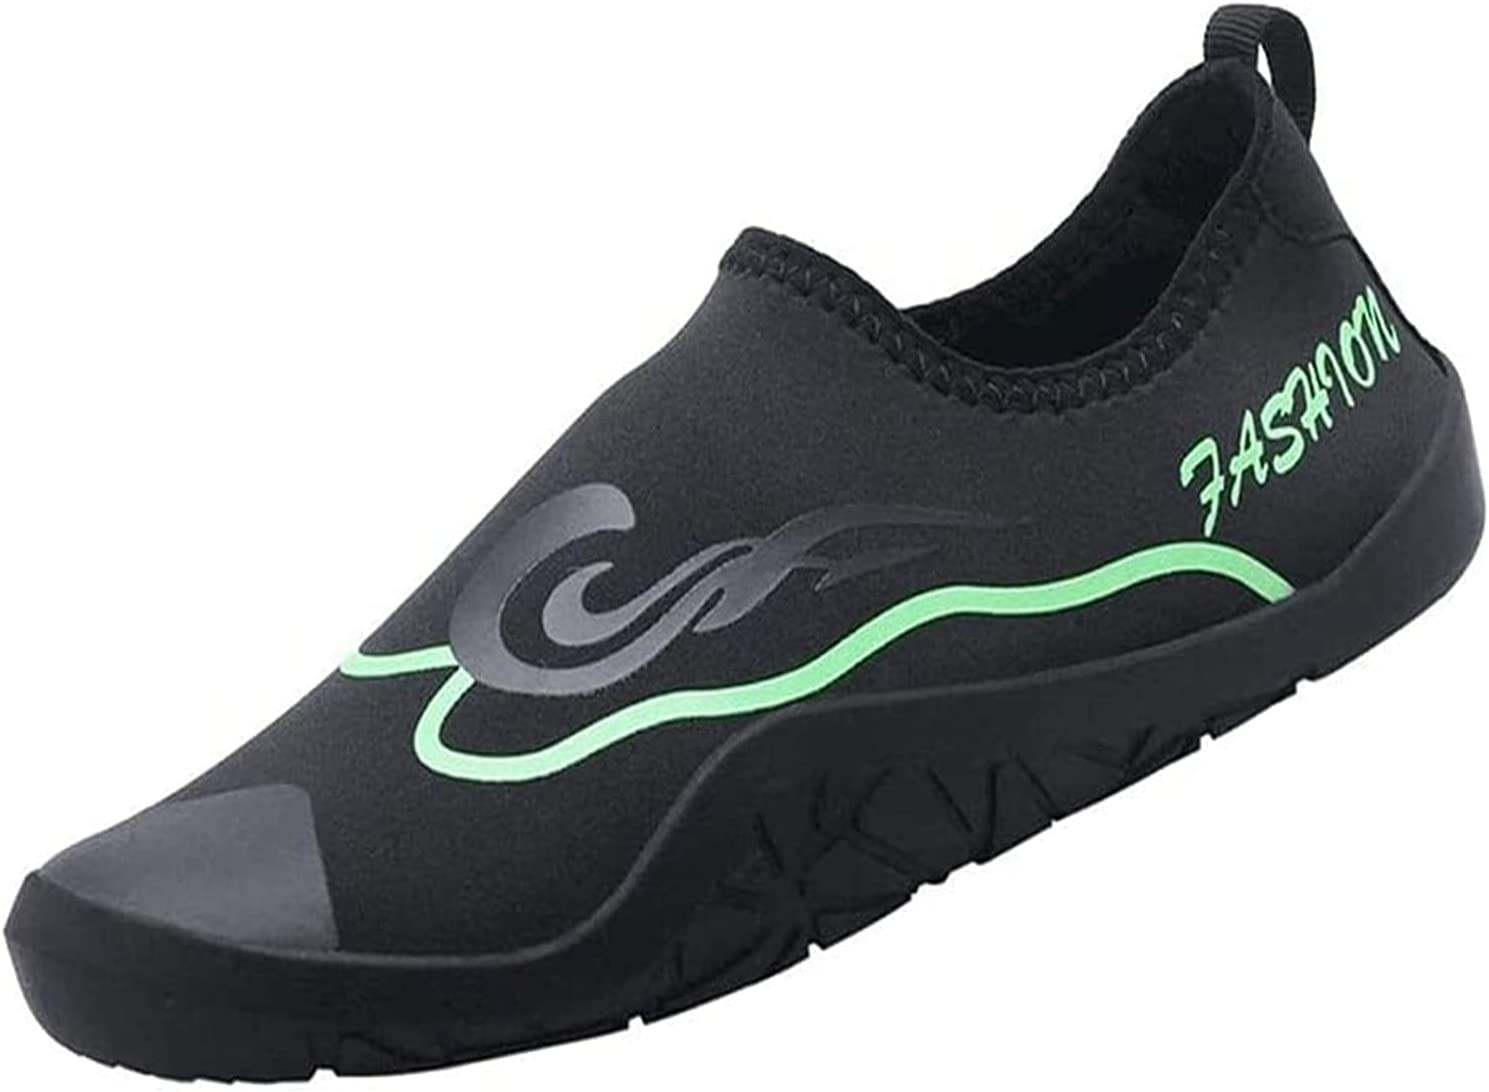 ZCX Water Shoes Water Shoes Barefoot Soft Bottom Shoes Outdoor Beach Shoes Snorkeling Diving Shoes Non-Slip Swimming Shoes for Women Mens Water Shoes (Color : Green, Size : 36 EU)